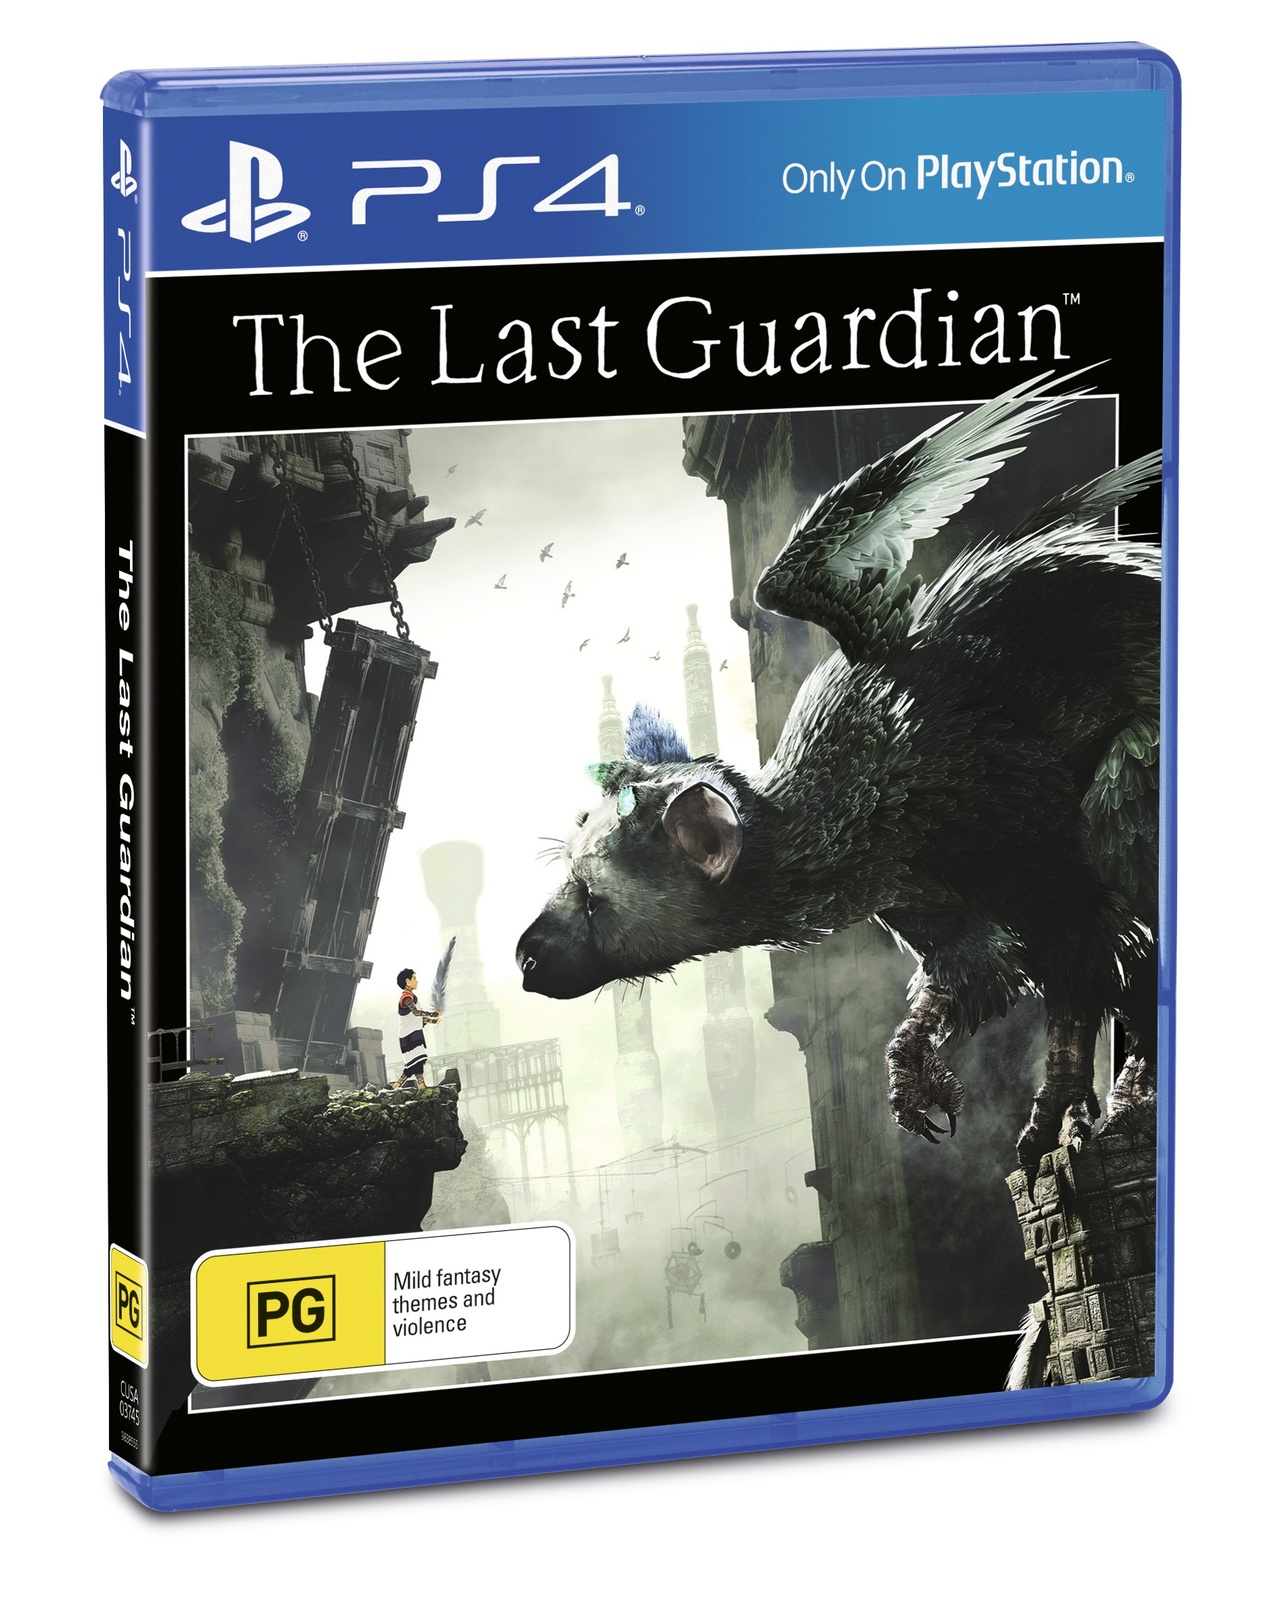 The Last Guardian for PS4 image